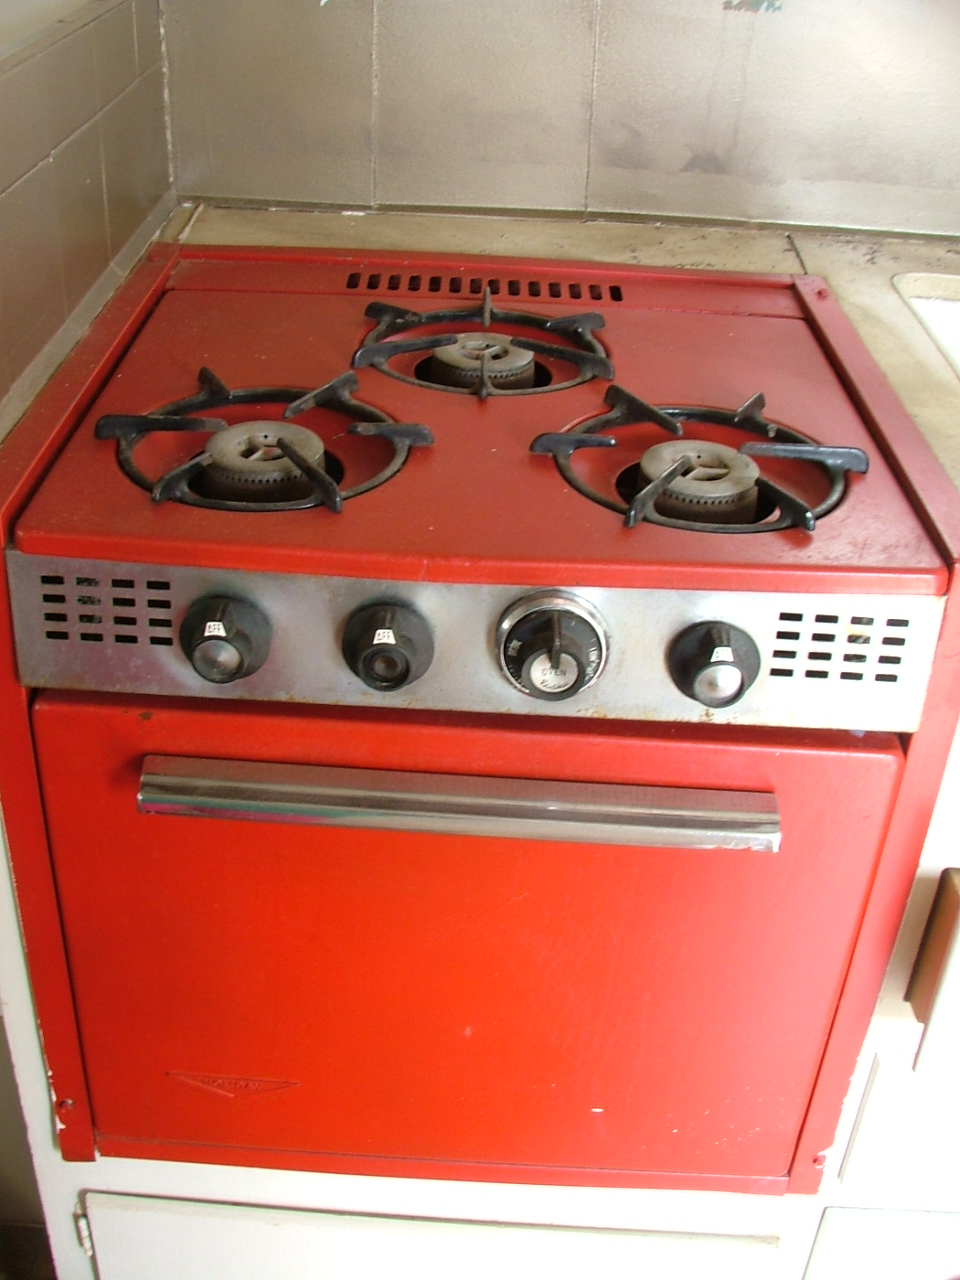 Click image for larger version  Name:trailer stove all.JPG Views:74 Size:424.3 KB ID:174581